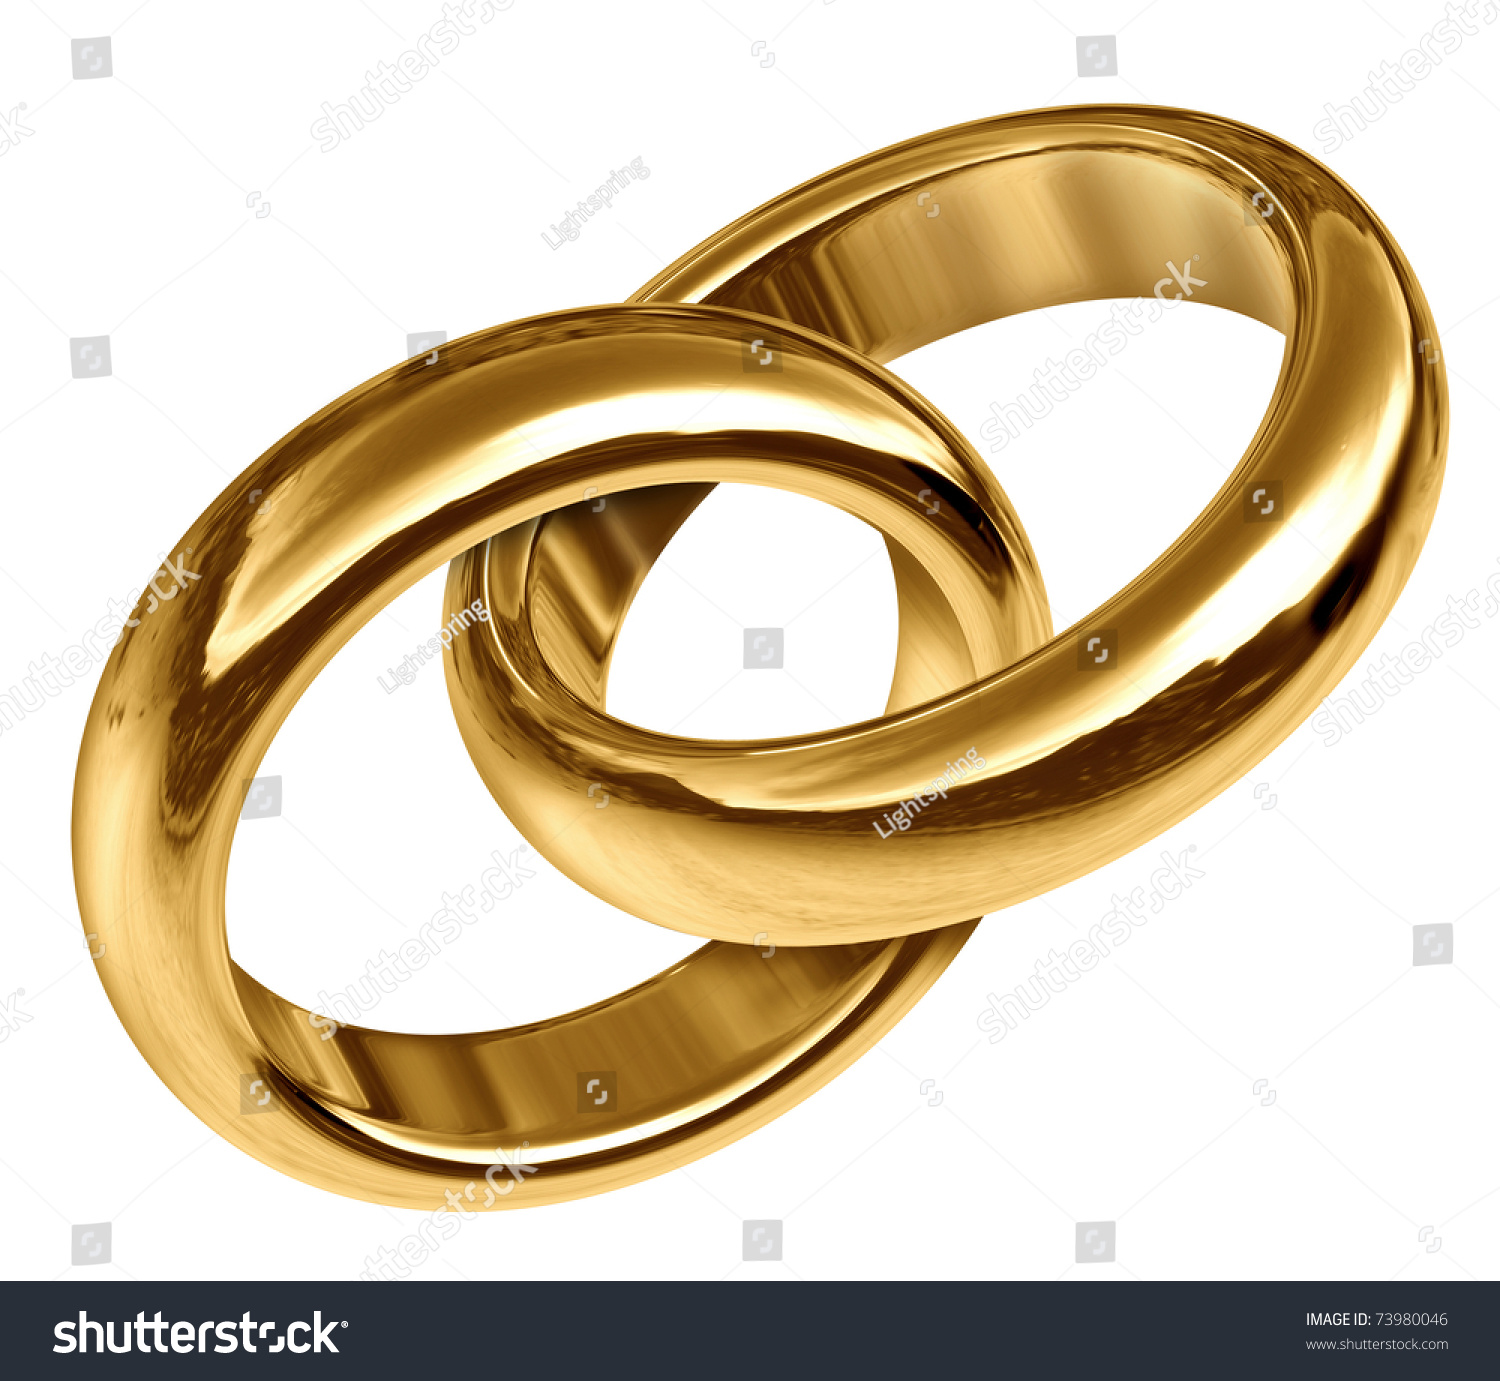 interlocking wedding rings his and hers interlocking wedding rings Interlocking Wedding Rings Drawing